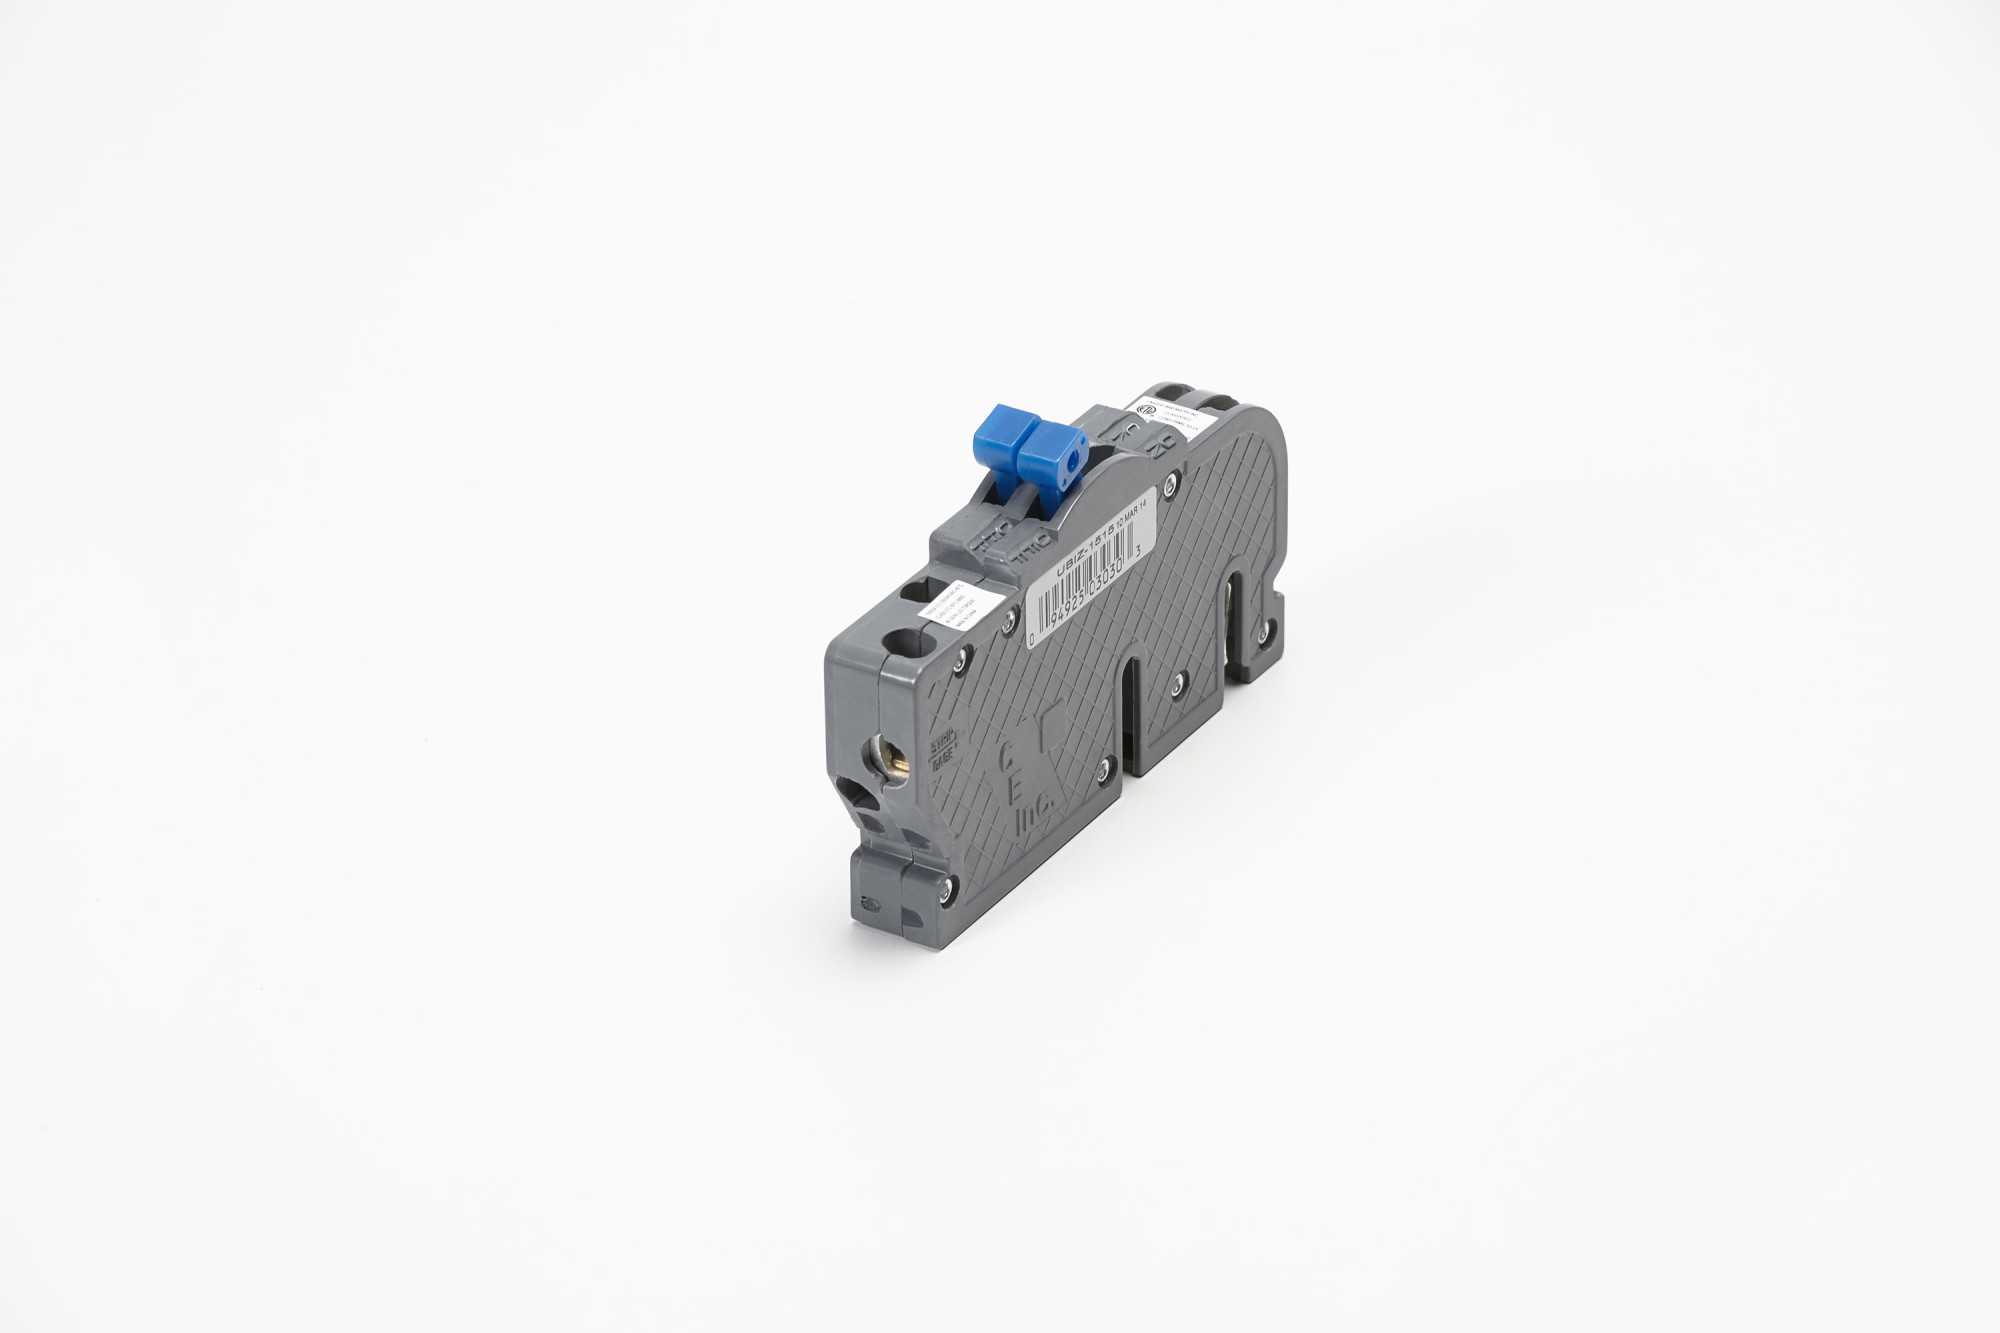 Twin 15//20 Amp Thin Series Manufactured by Connecticut Electric. UBIZ1520-New Zinsco R381520 Replacement